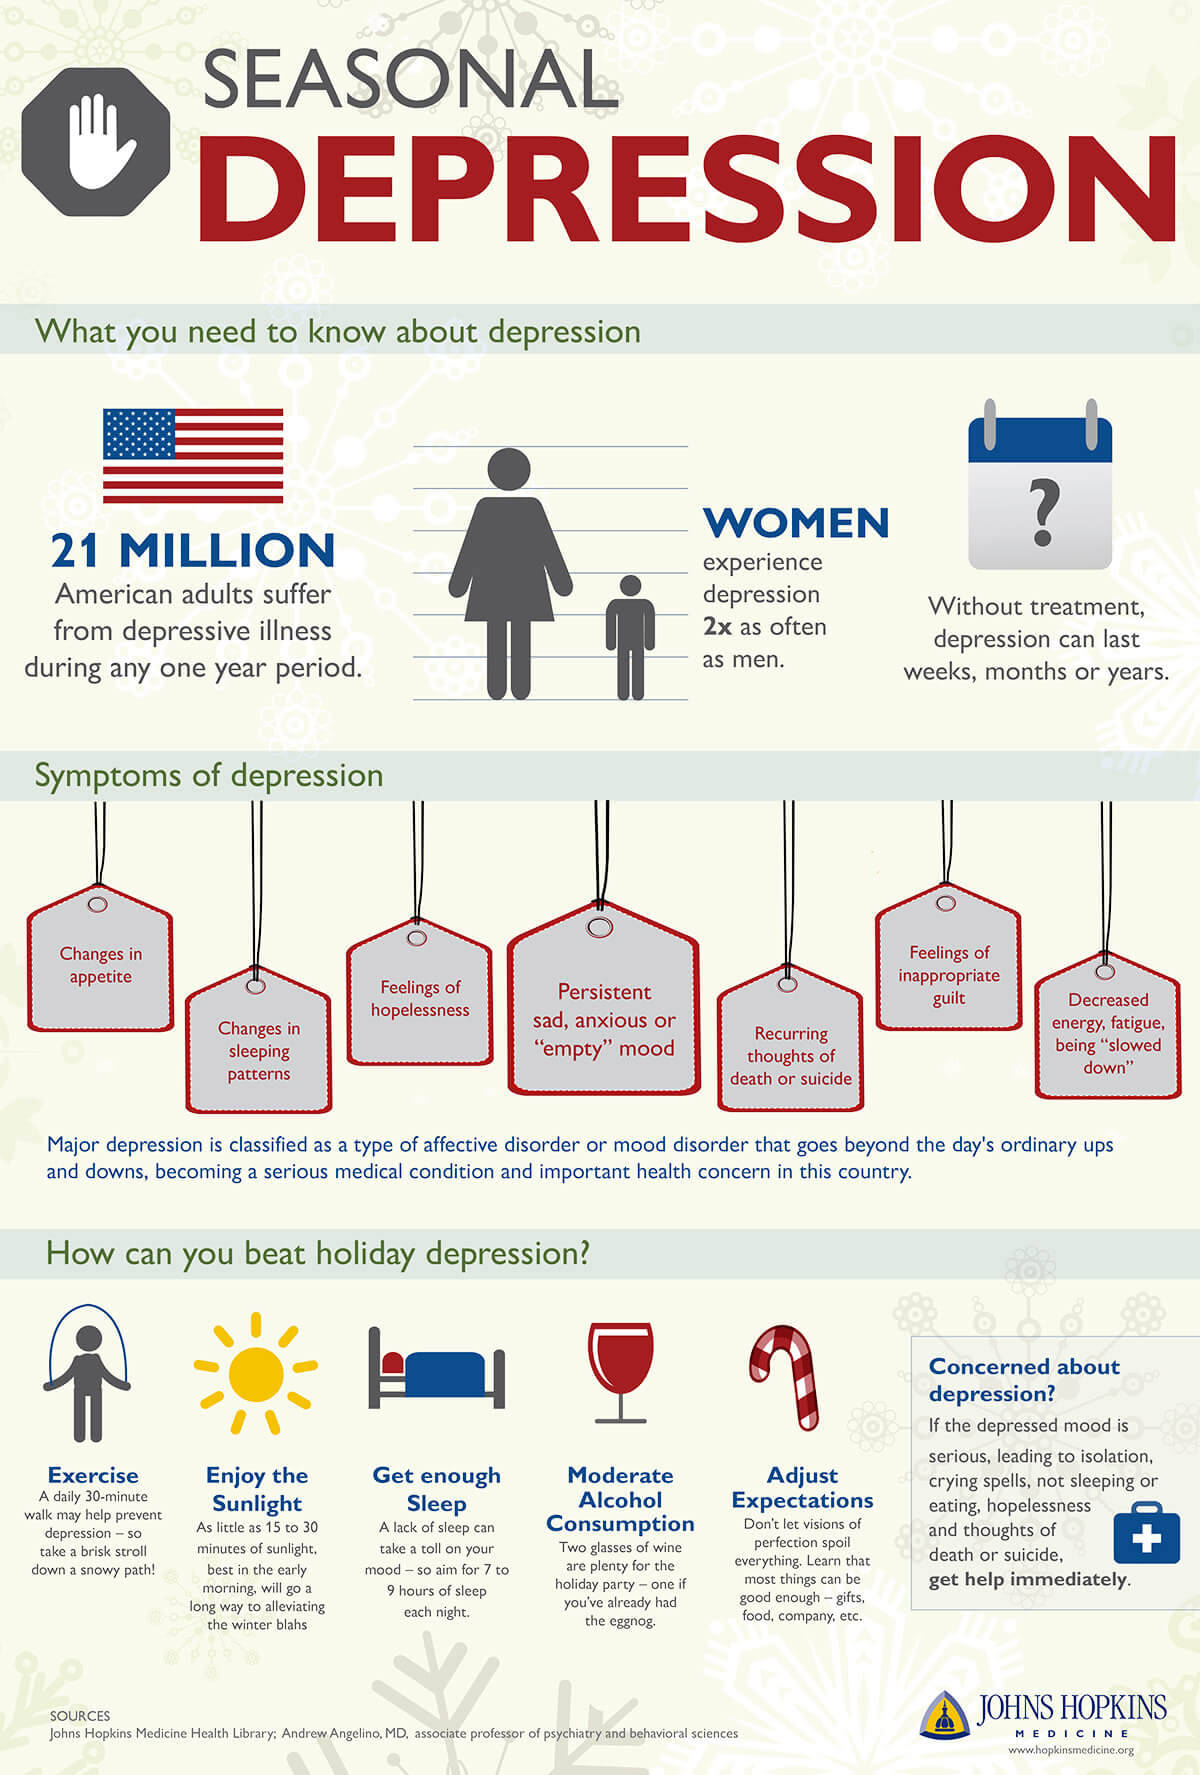 Tips for seasonal depression